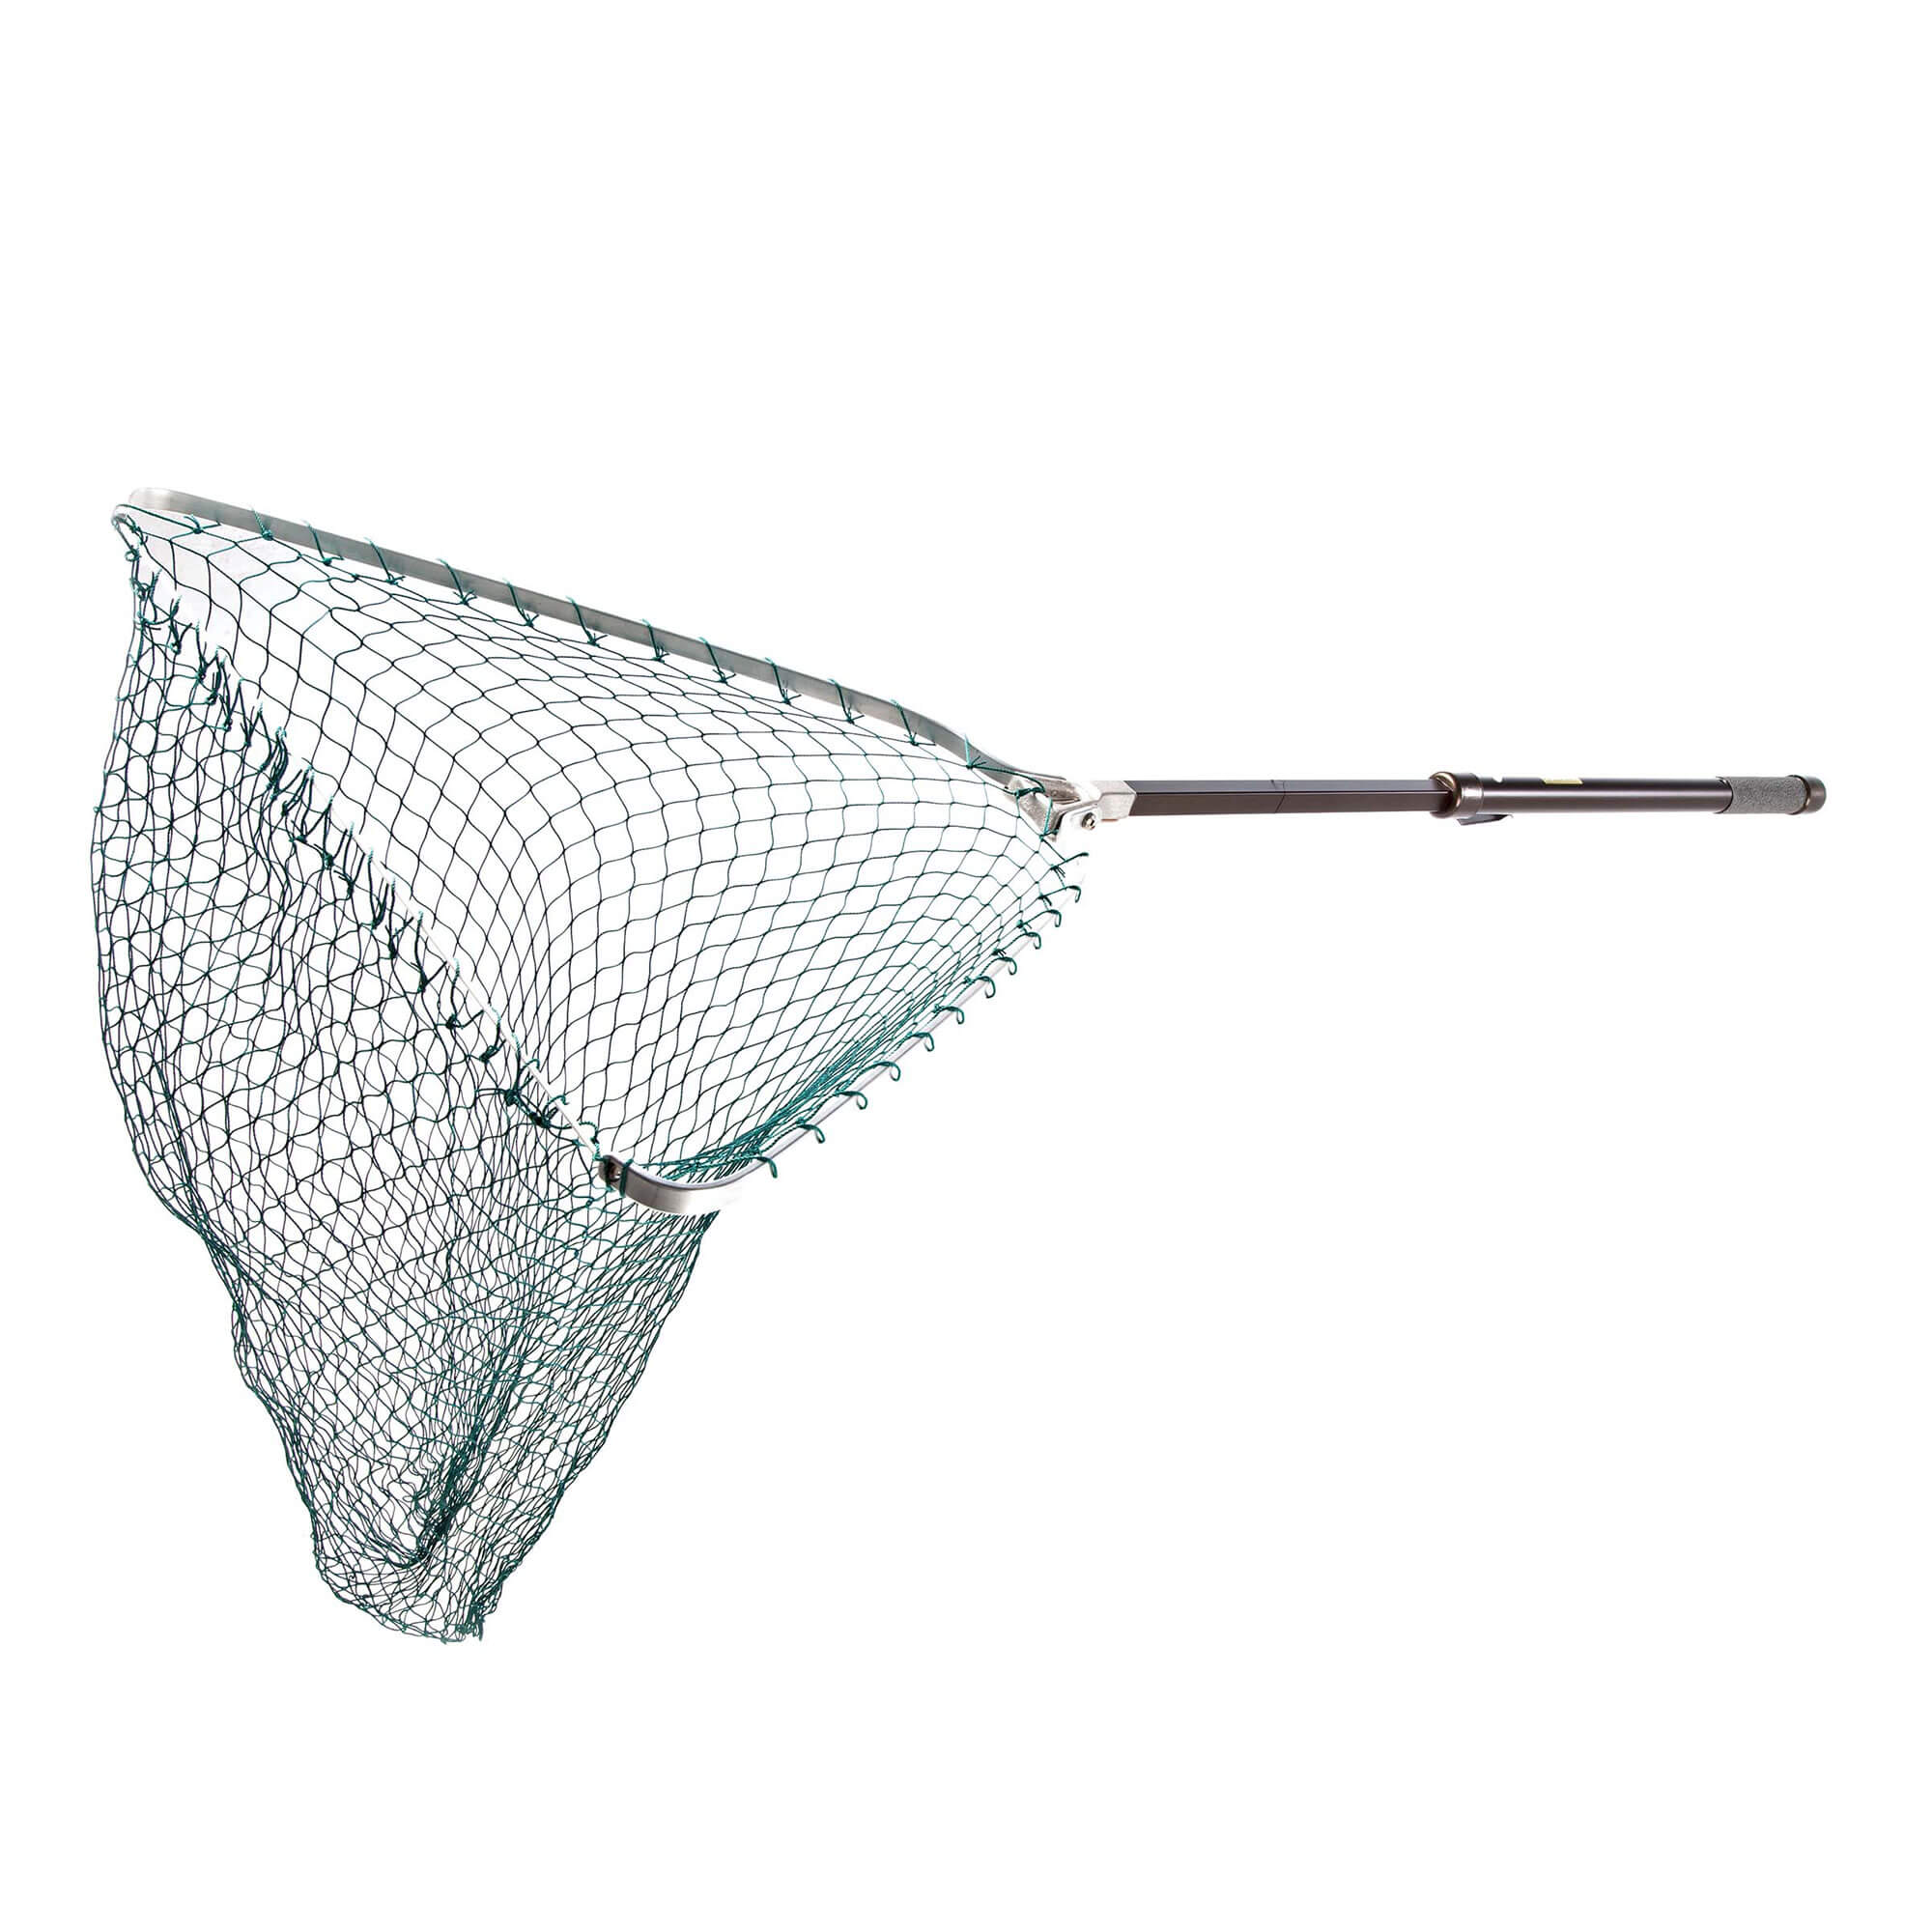 Mclean 120 Tele Hinged Weigh Net